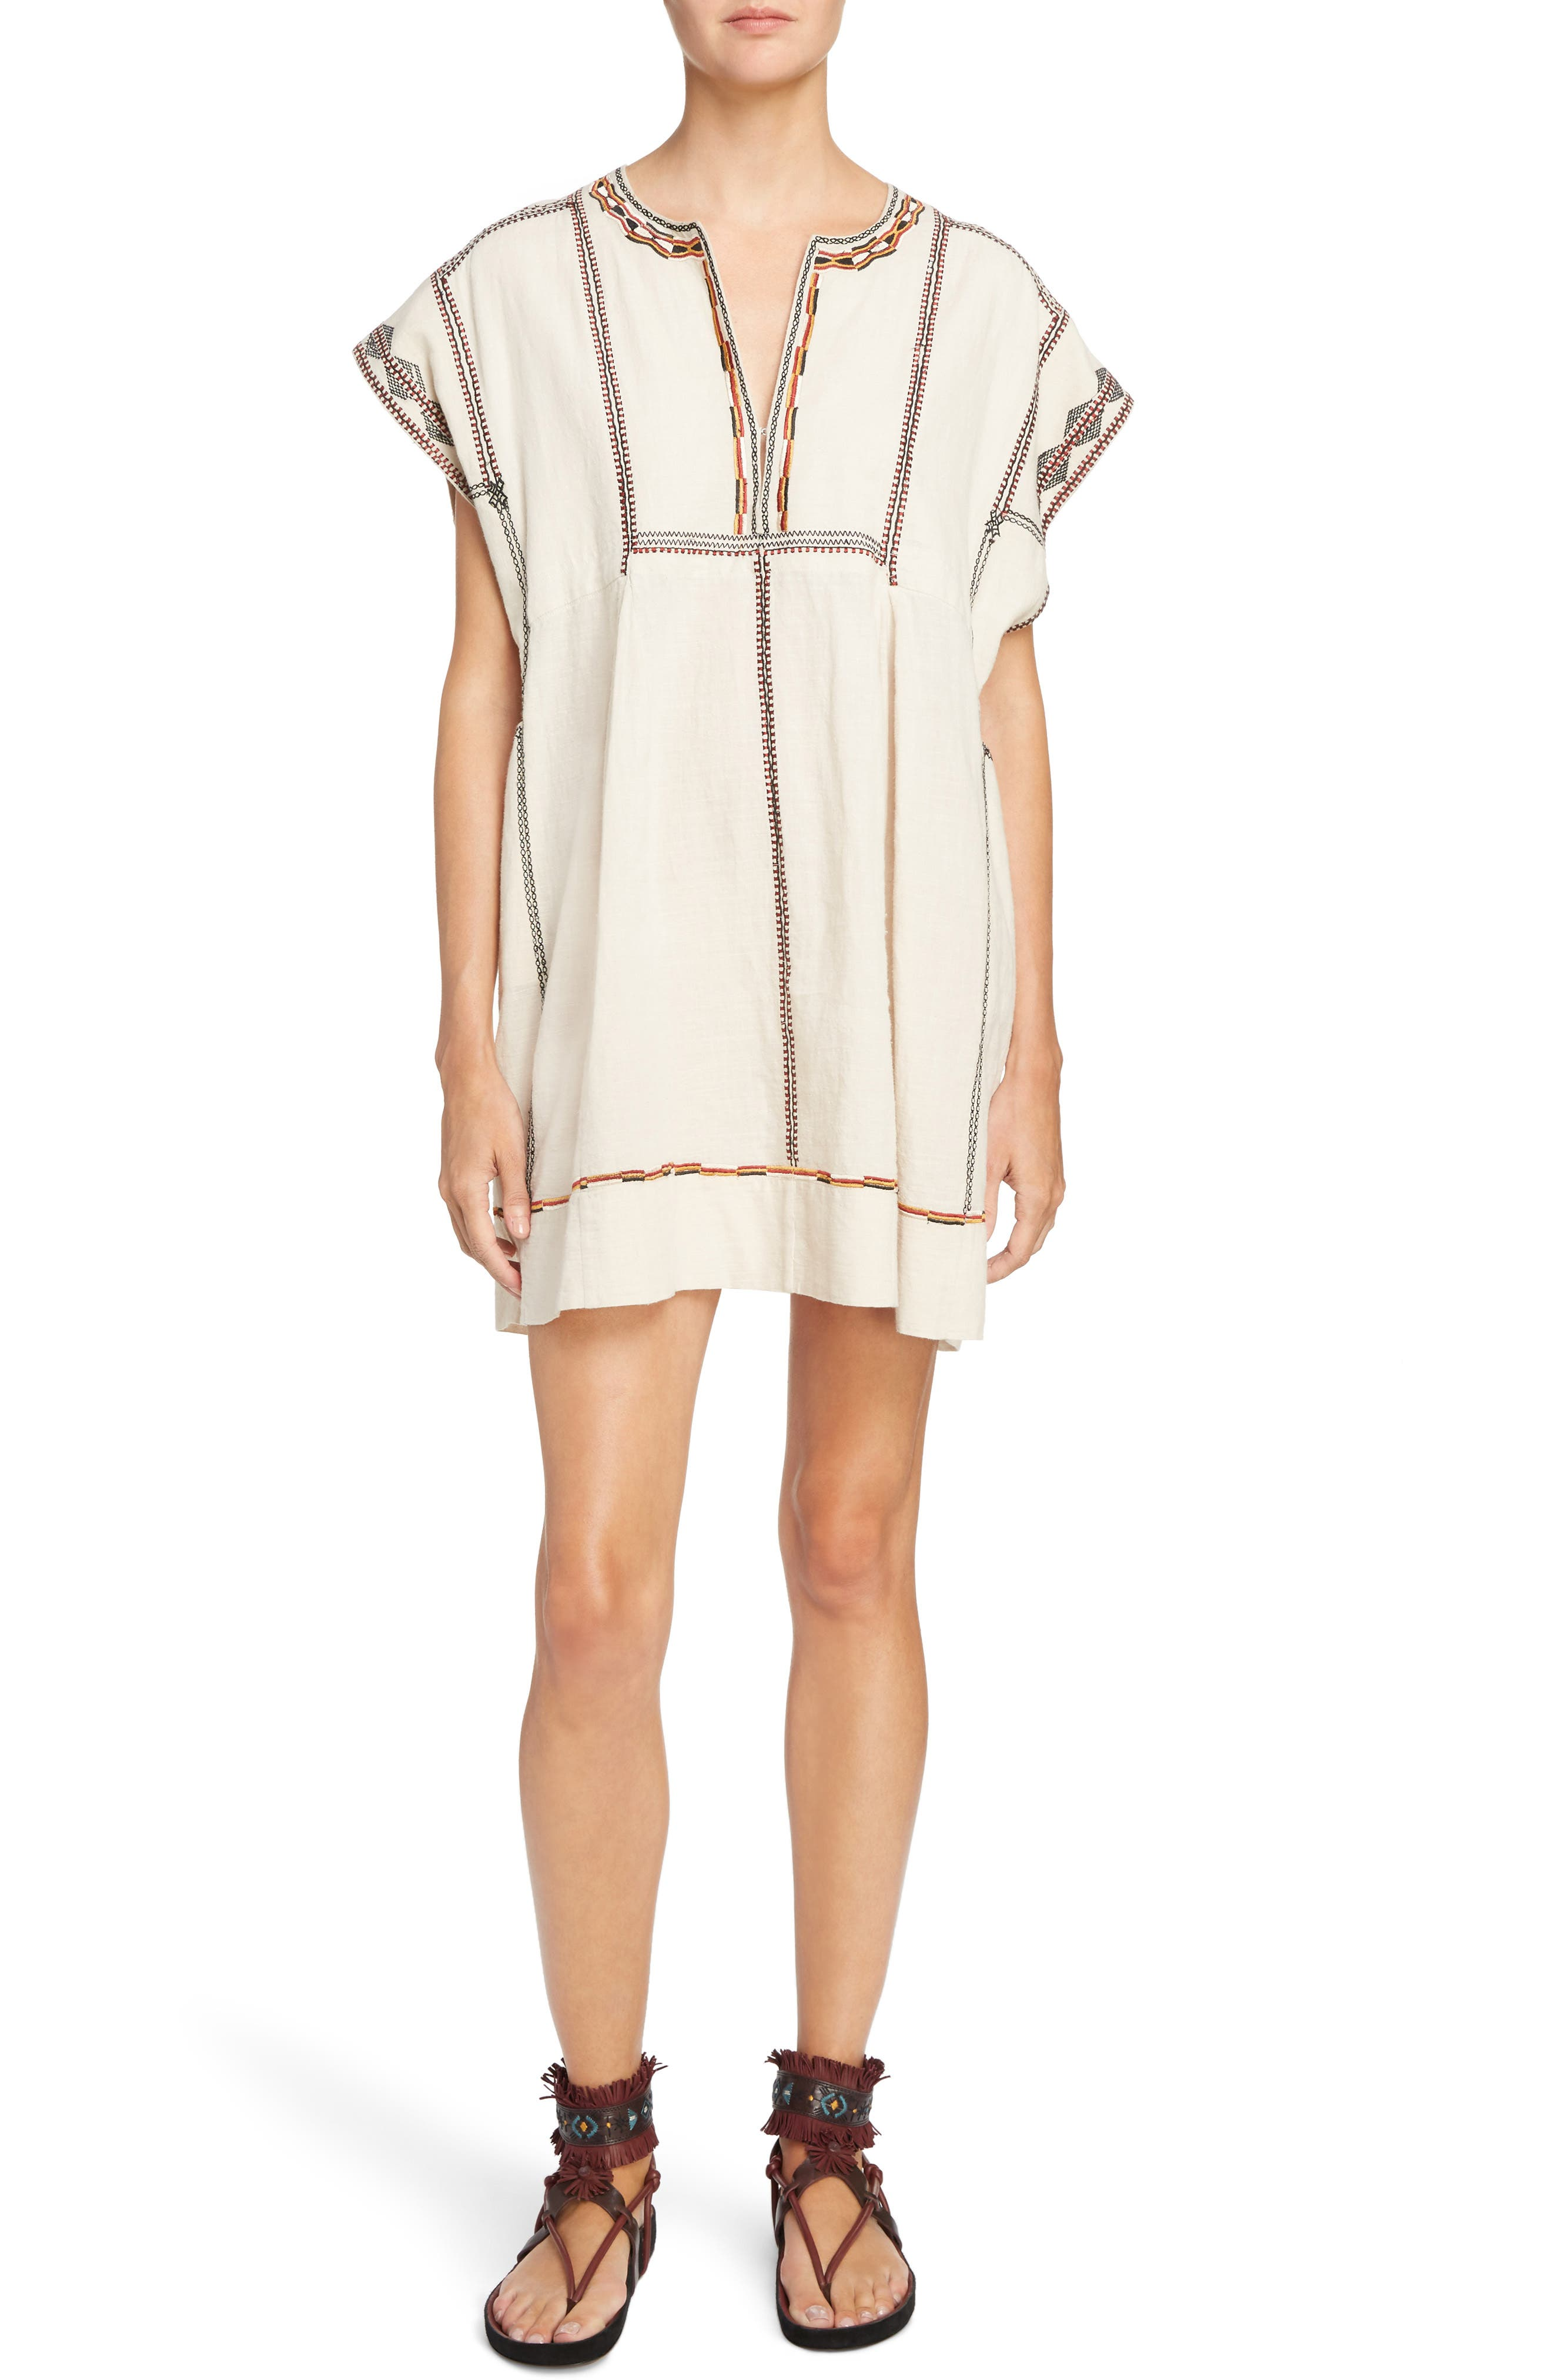 Isabel Marant Étoile Belissa Embroidered Shift Dress,                             Main thumbnail 1, color,                             250